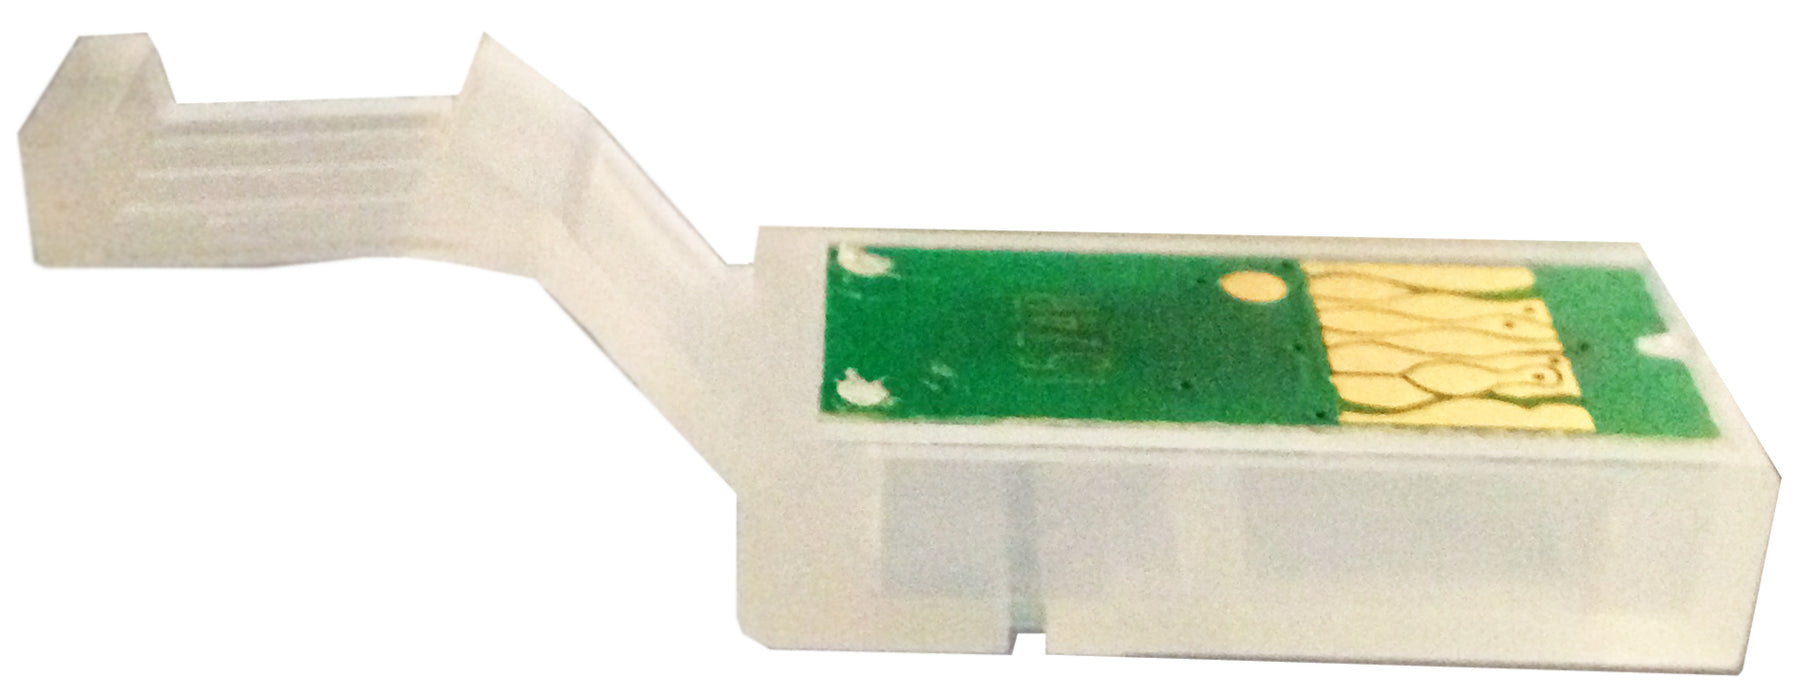 R3000 / Spectra / Katana  Cartridge Chips